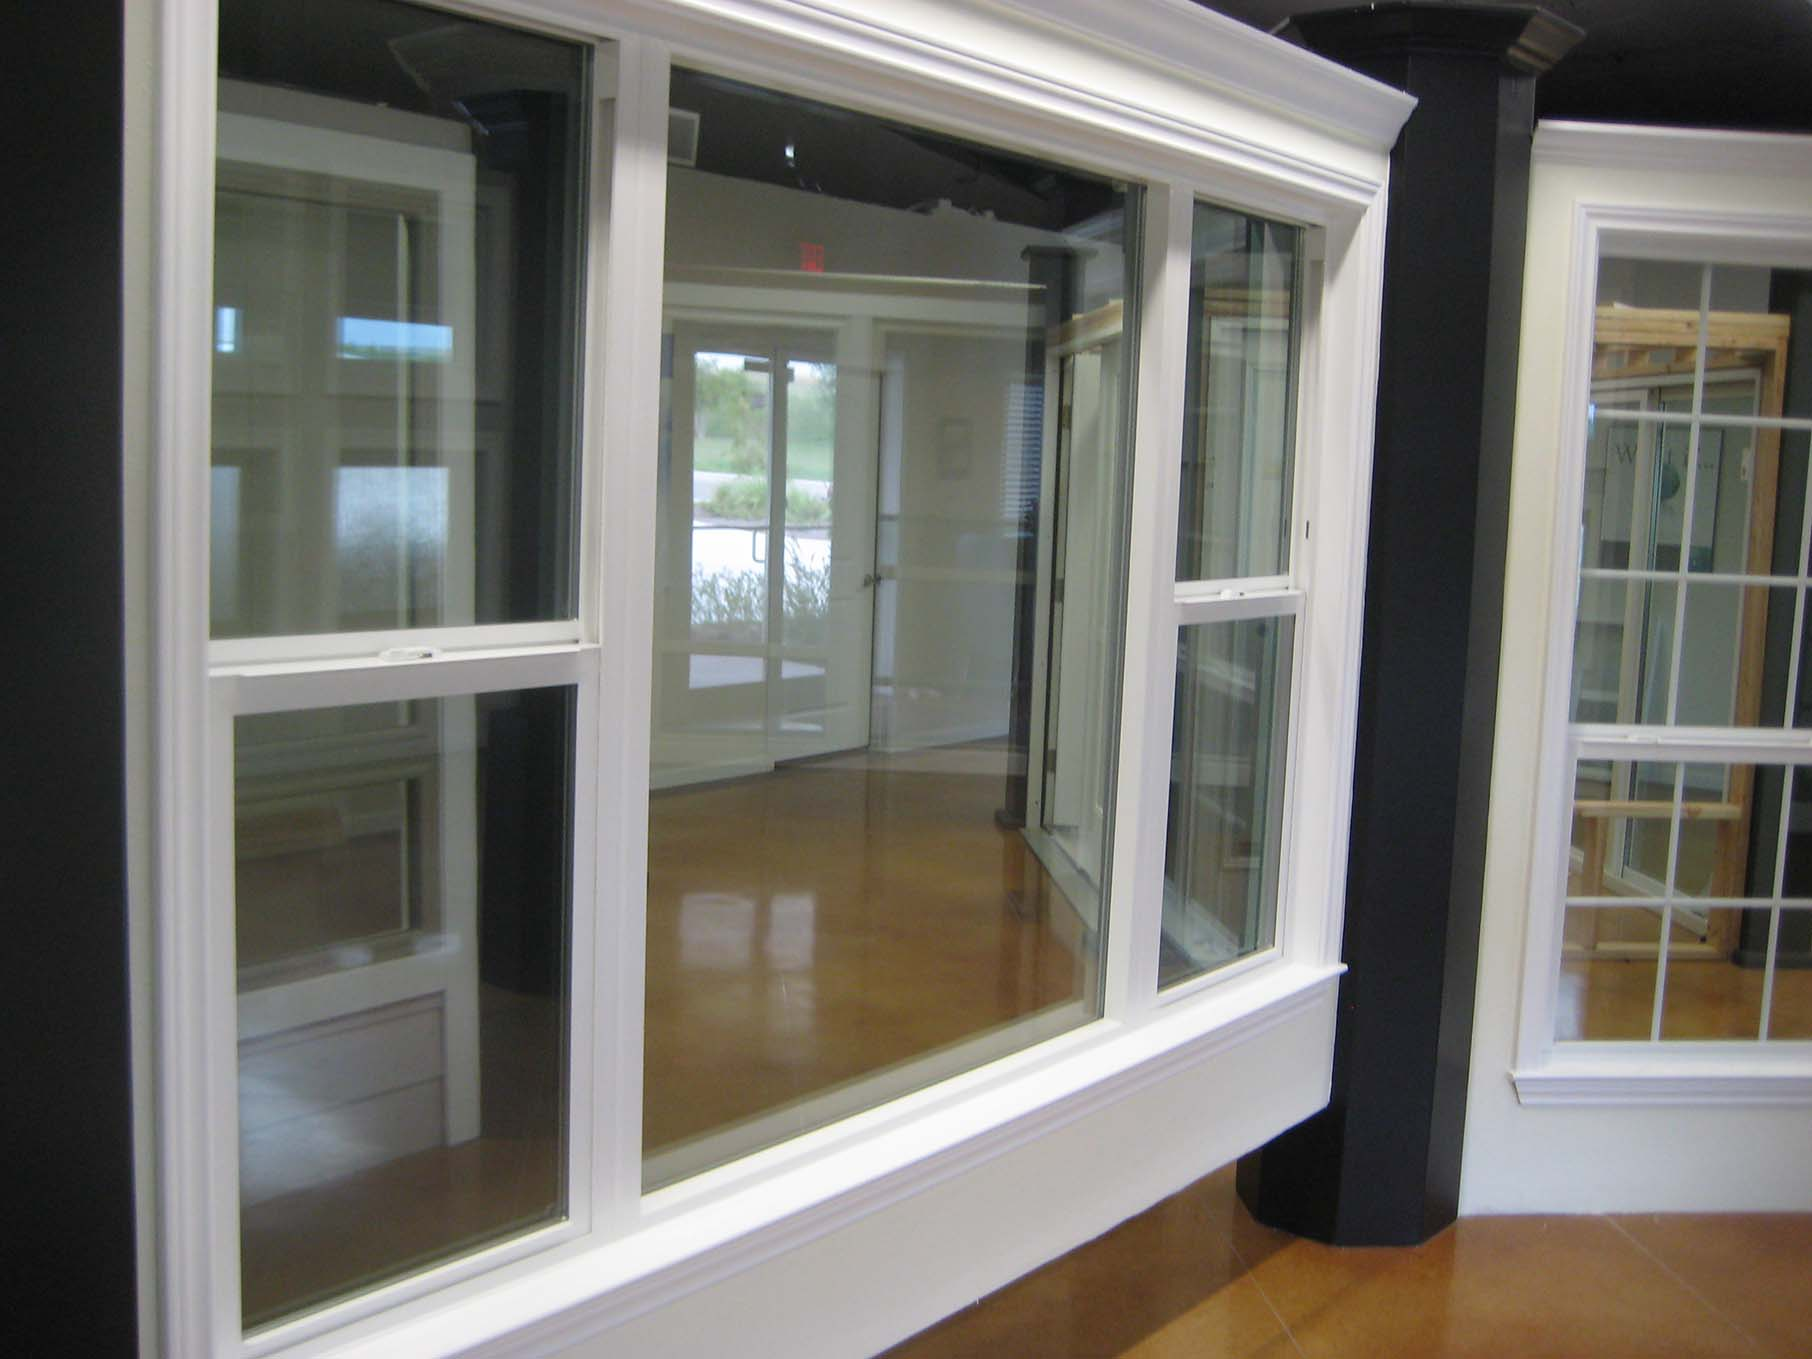 Drawings Of Single Hung Windows : Single hung vs double windows features custom home